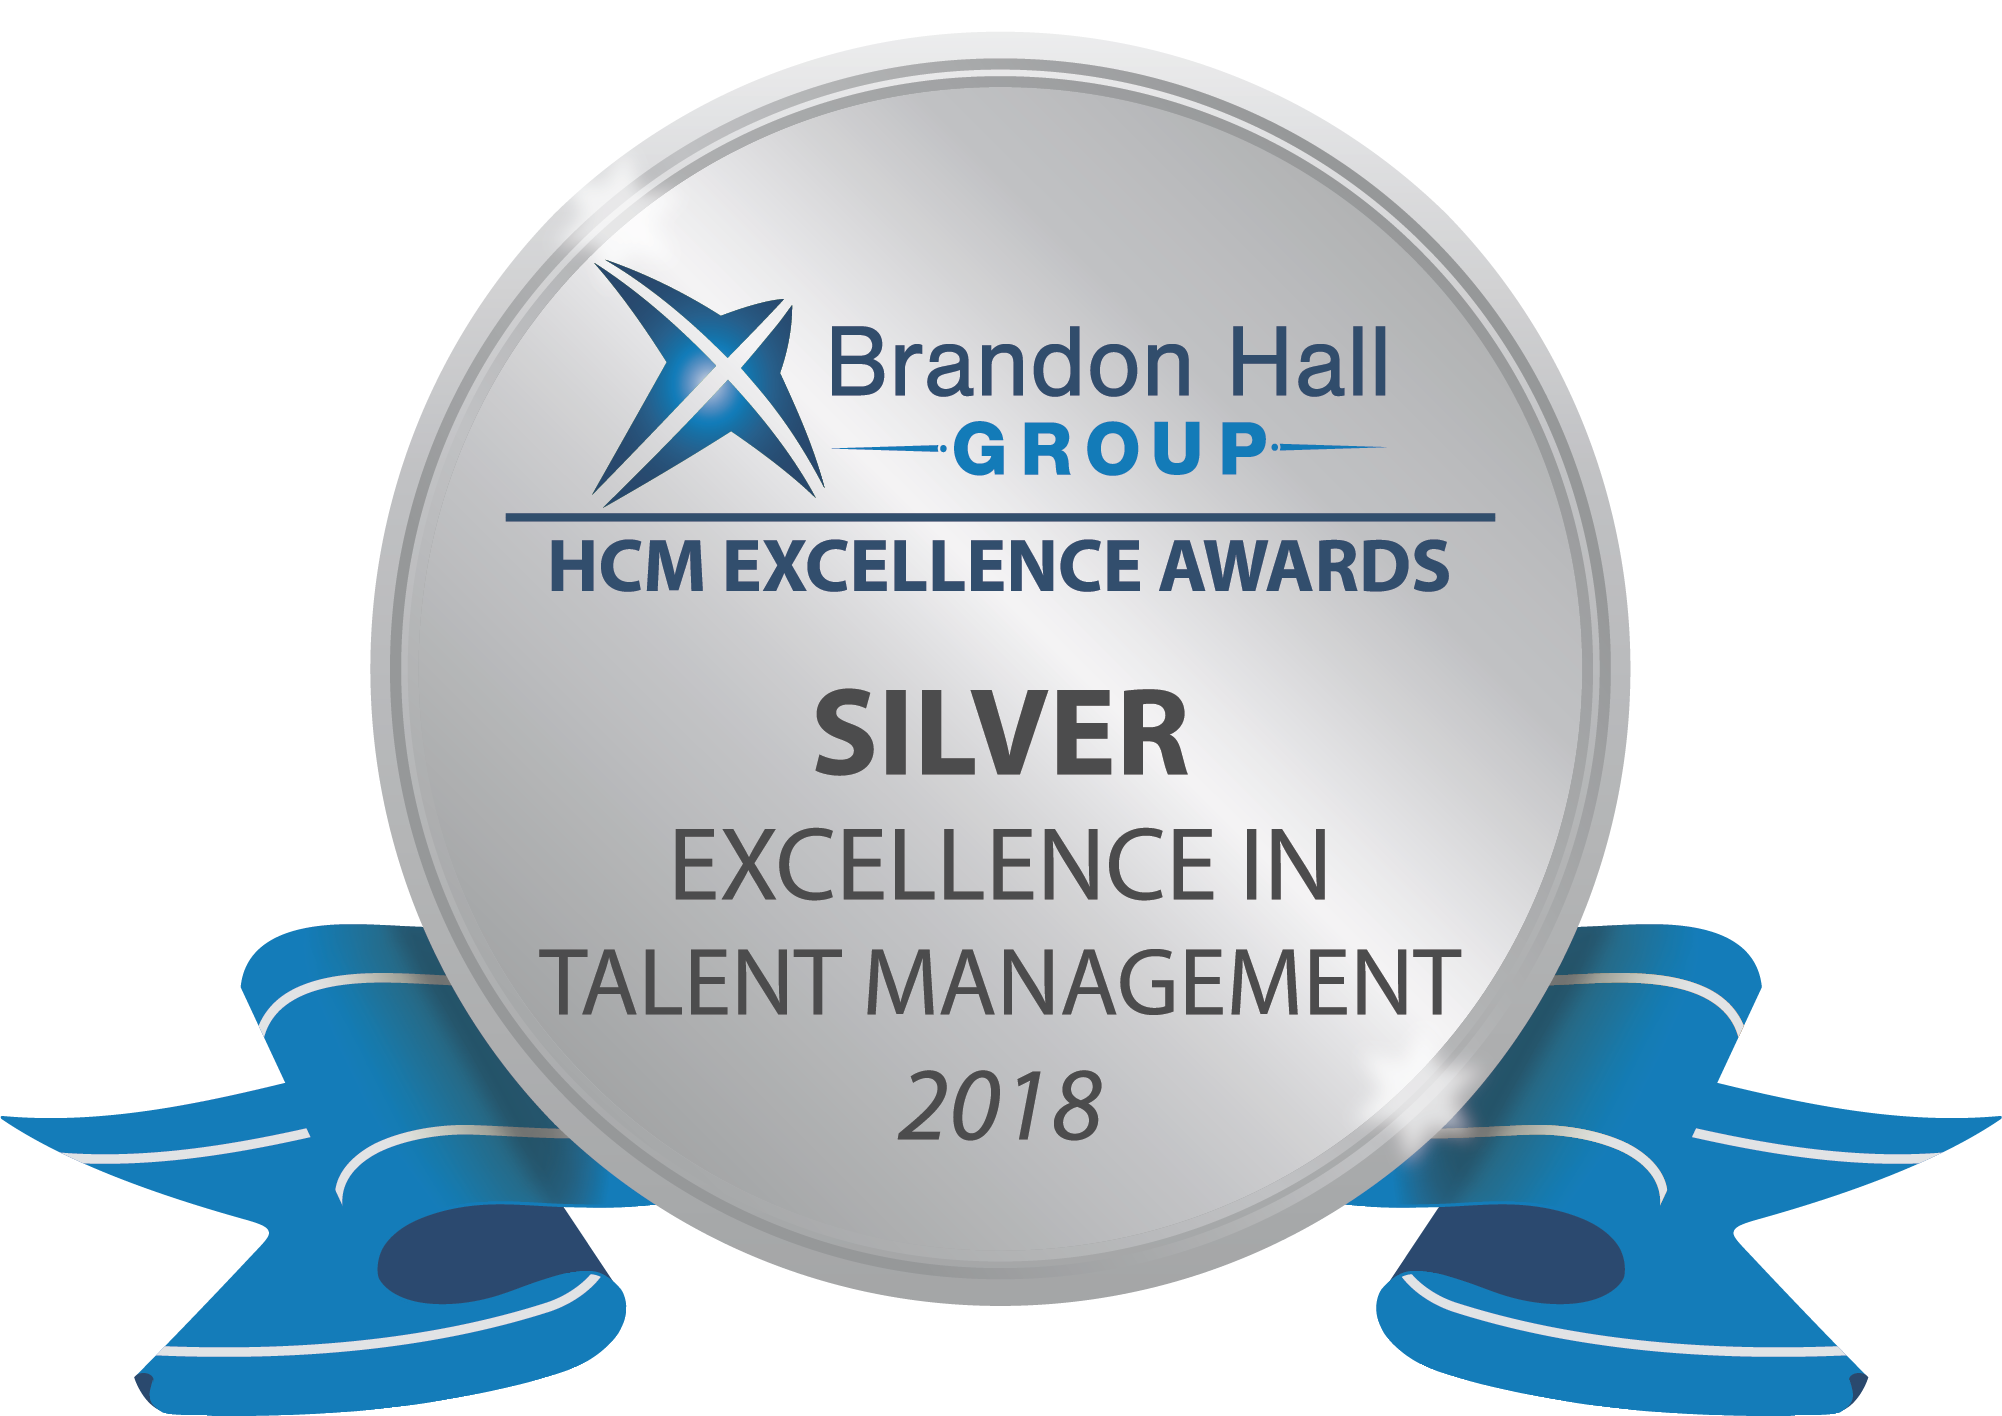 Brandon Hall Group MCM Excellence Awards Bronze Excellence in Learning 2018